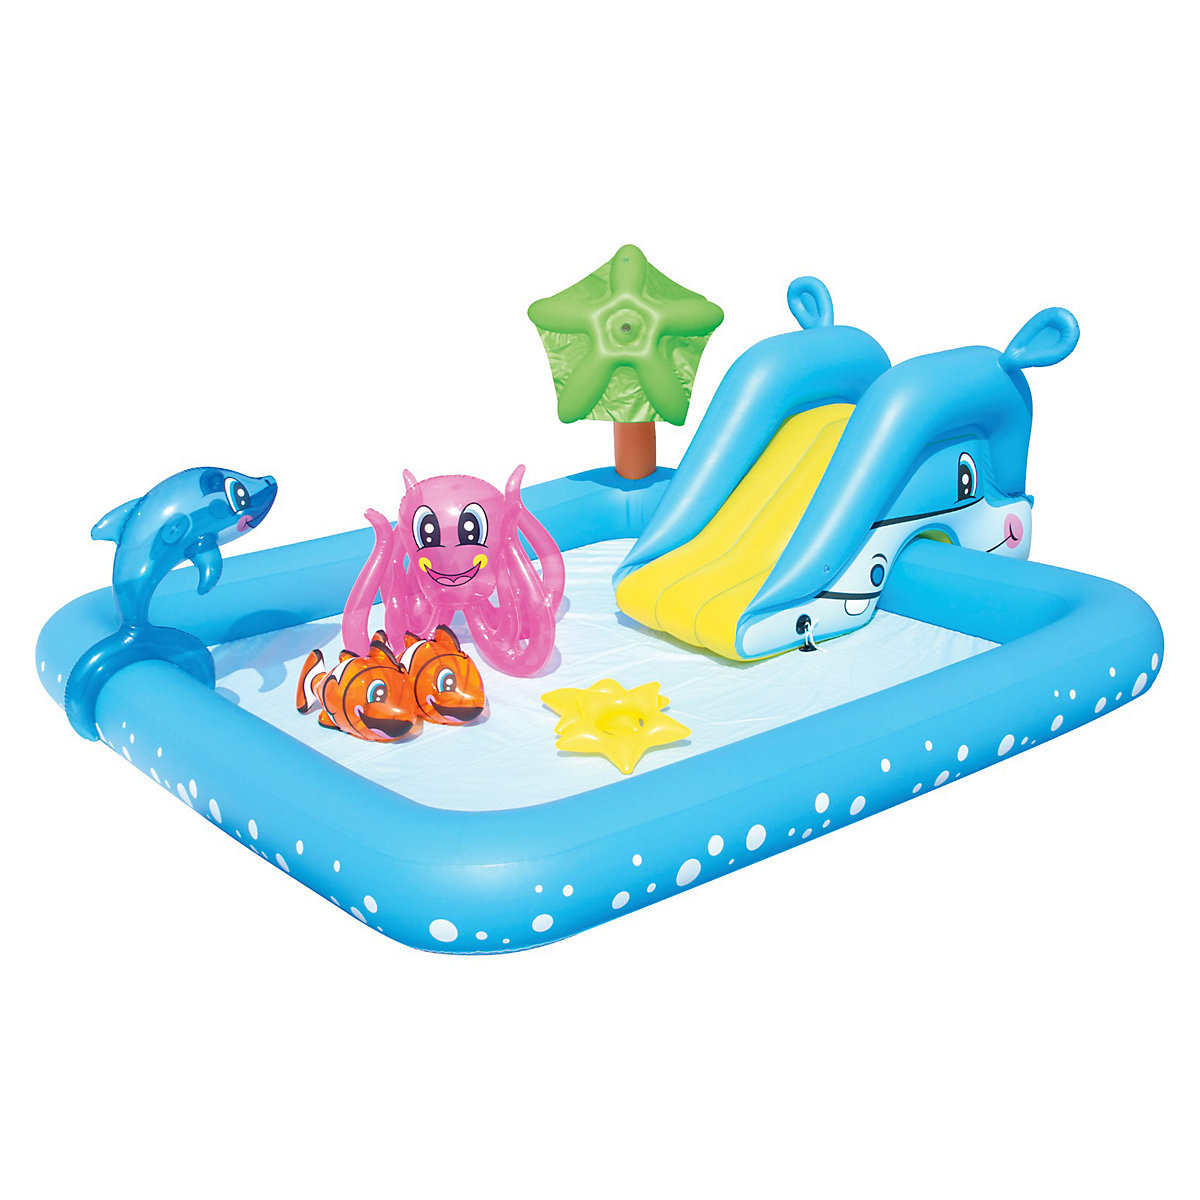 BESTWAY Swimming Pool 3340163 inflatable pools Accessories Activity & Gear tub Kids Baby for children large adult swimming pool children swimming pools different size pvc pool inflate swimming tools